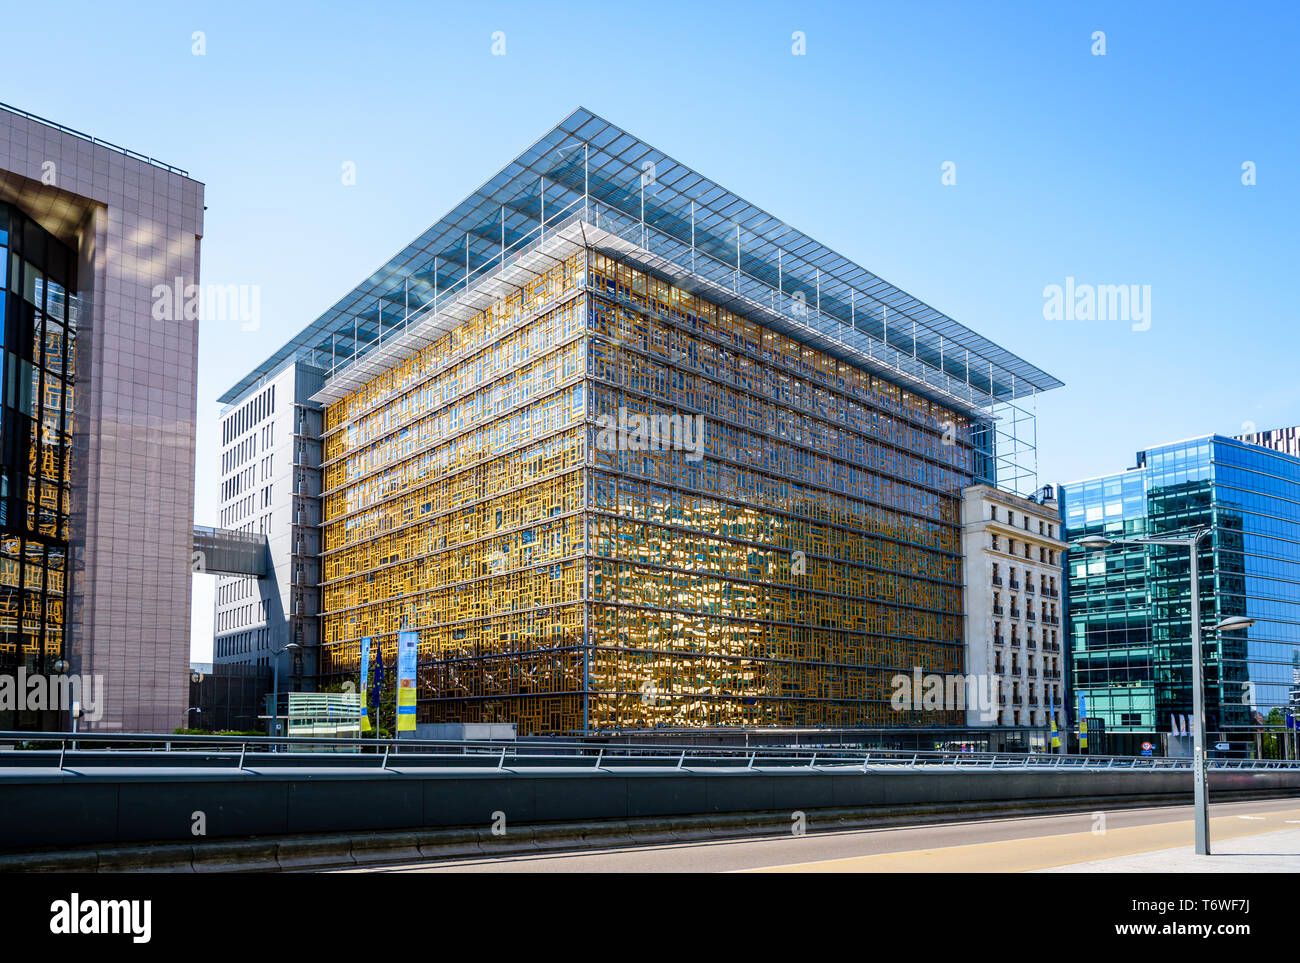 The Europa building on a sunny day, seat of the Council of the European Union and the European Council in the European quarter in Brussels, Belgium. - Stock Image